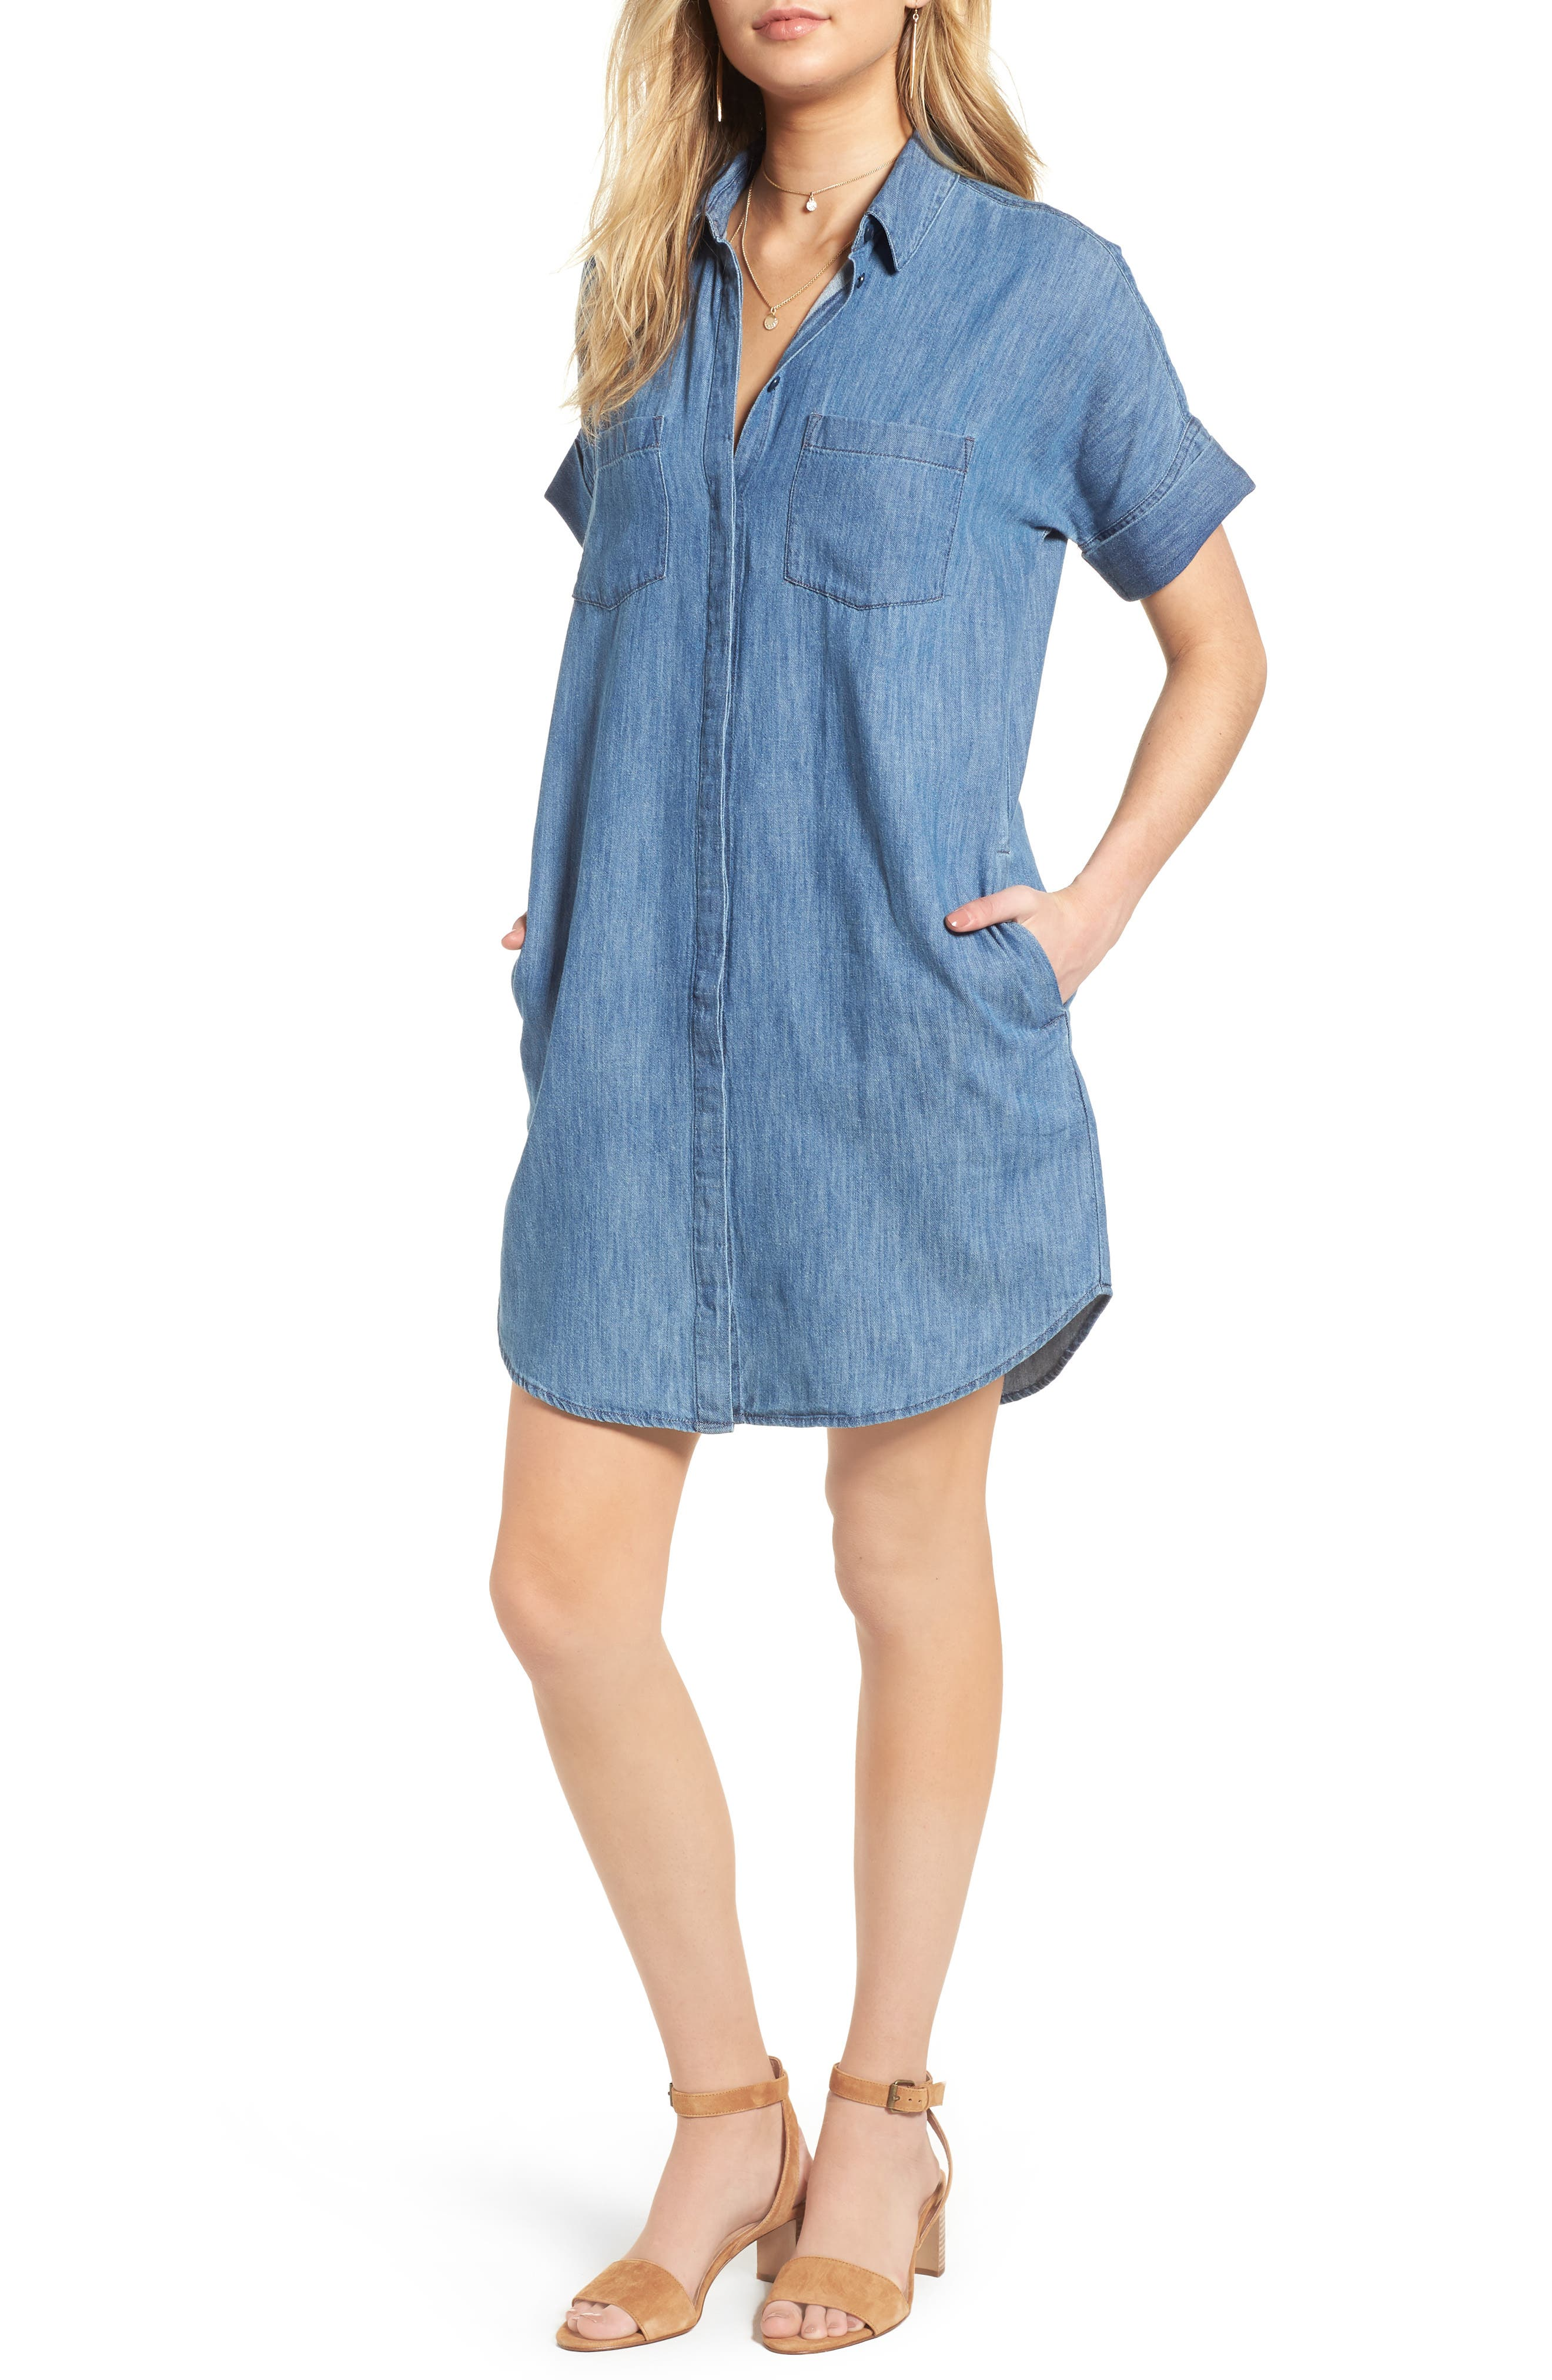 MADEWELL, Courier Denim Shirtdress, Main thumbnail 1, color, 400